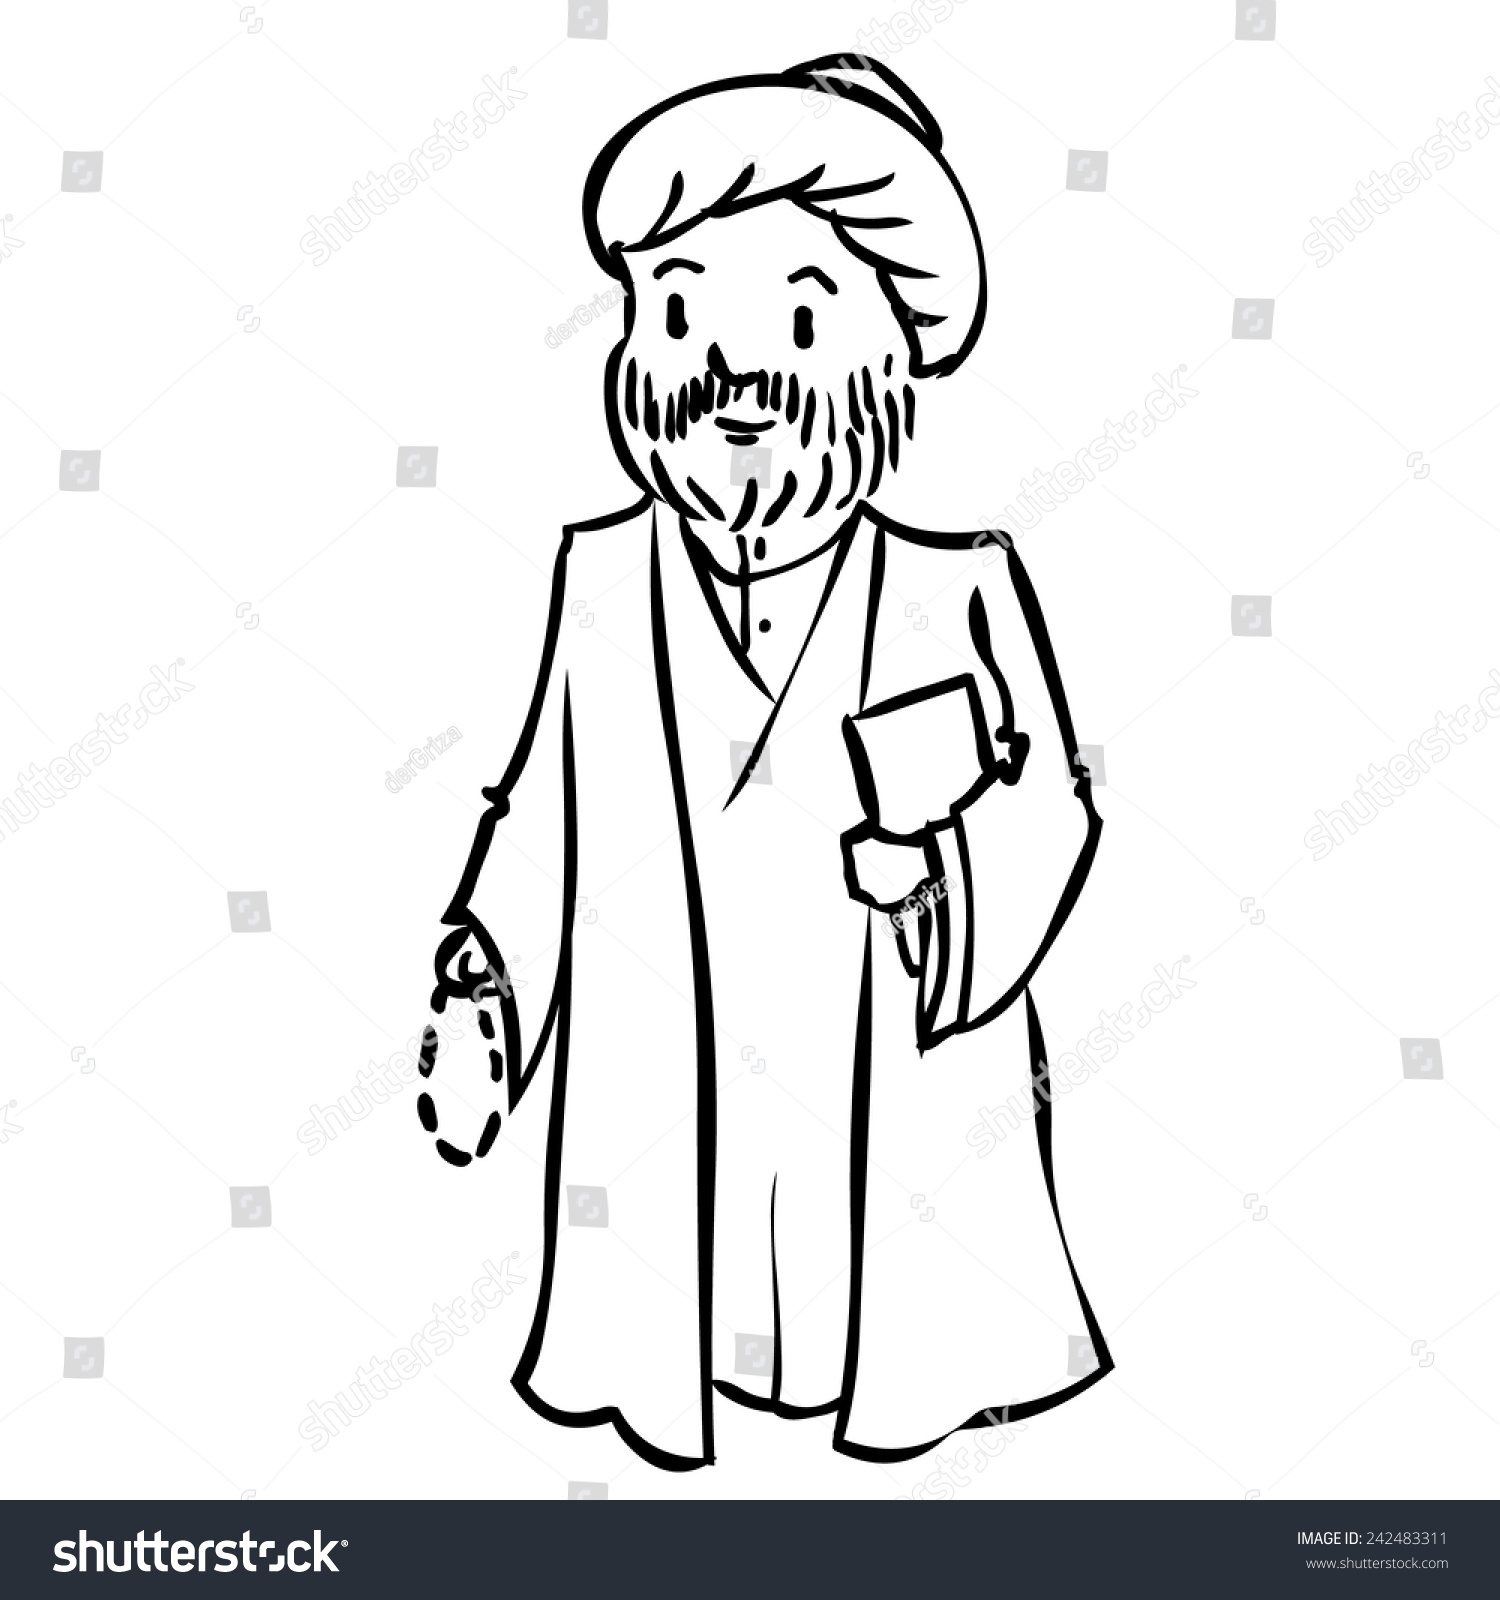 hight resolution of priest clipart